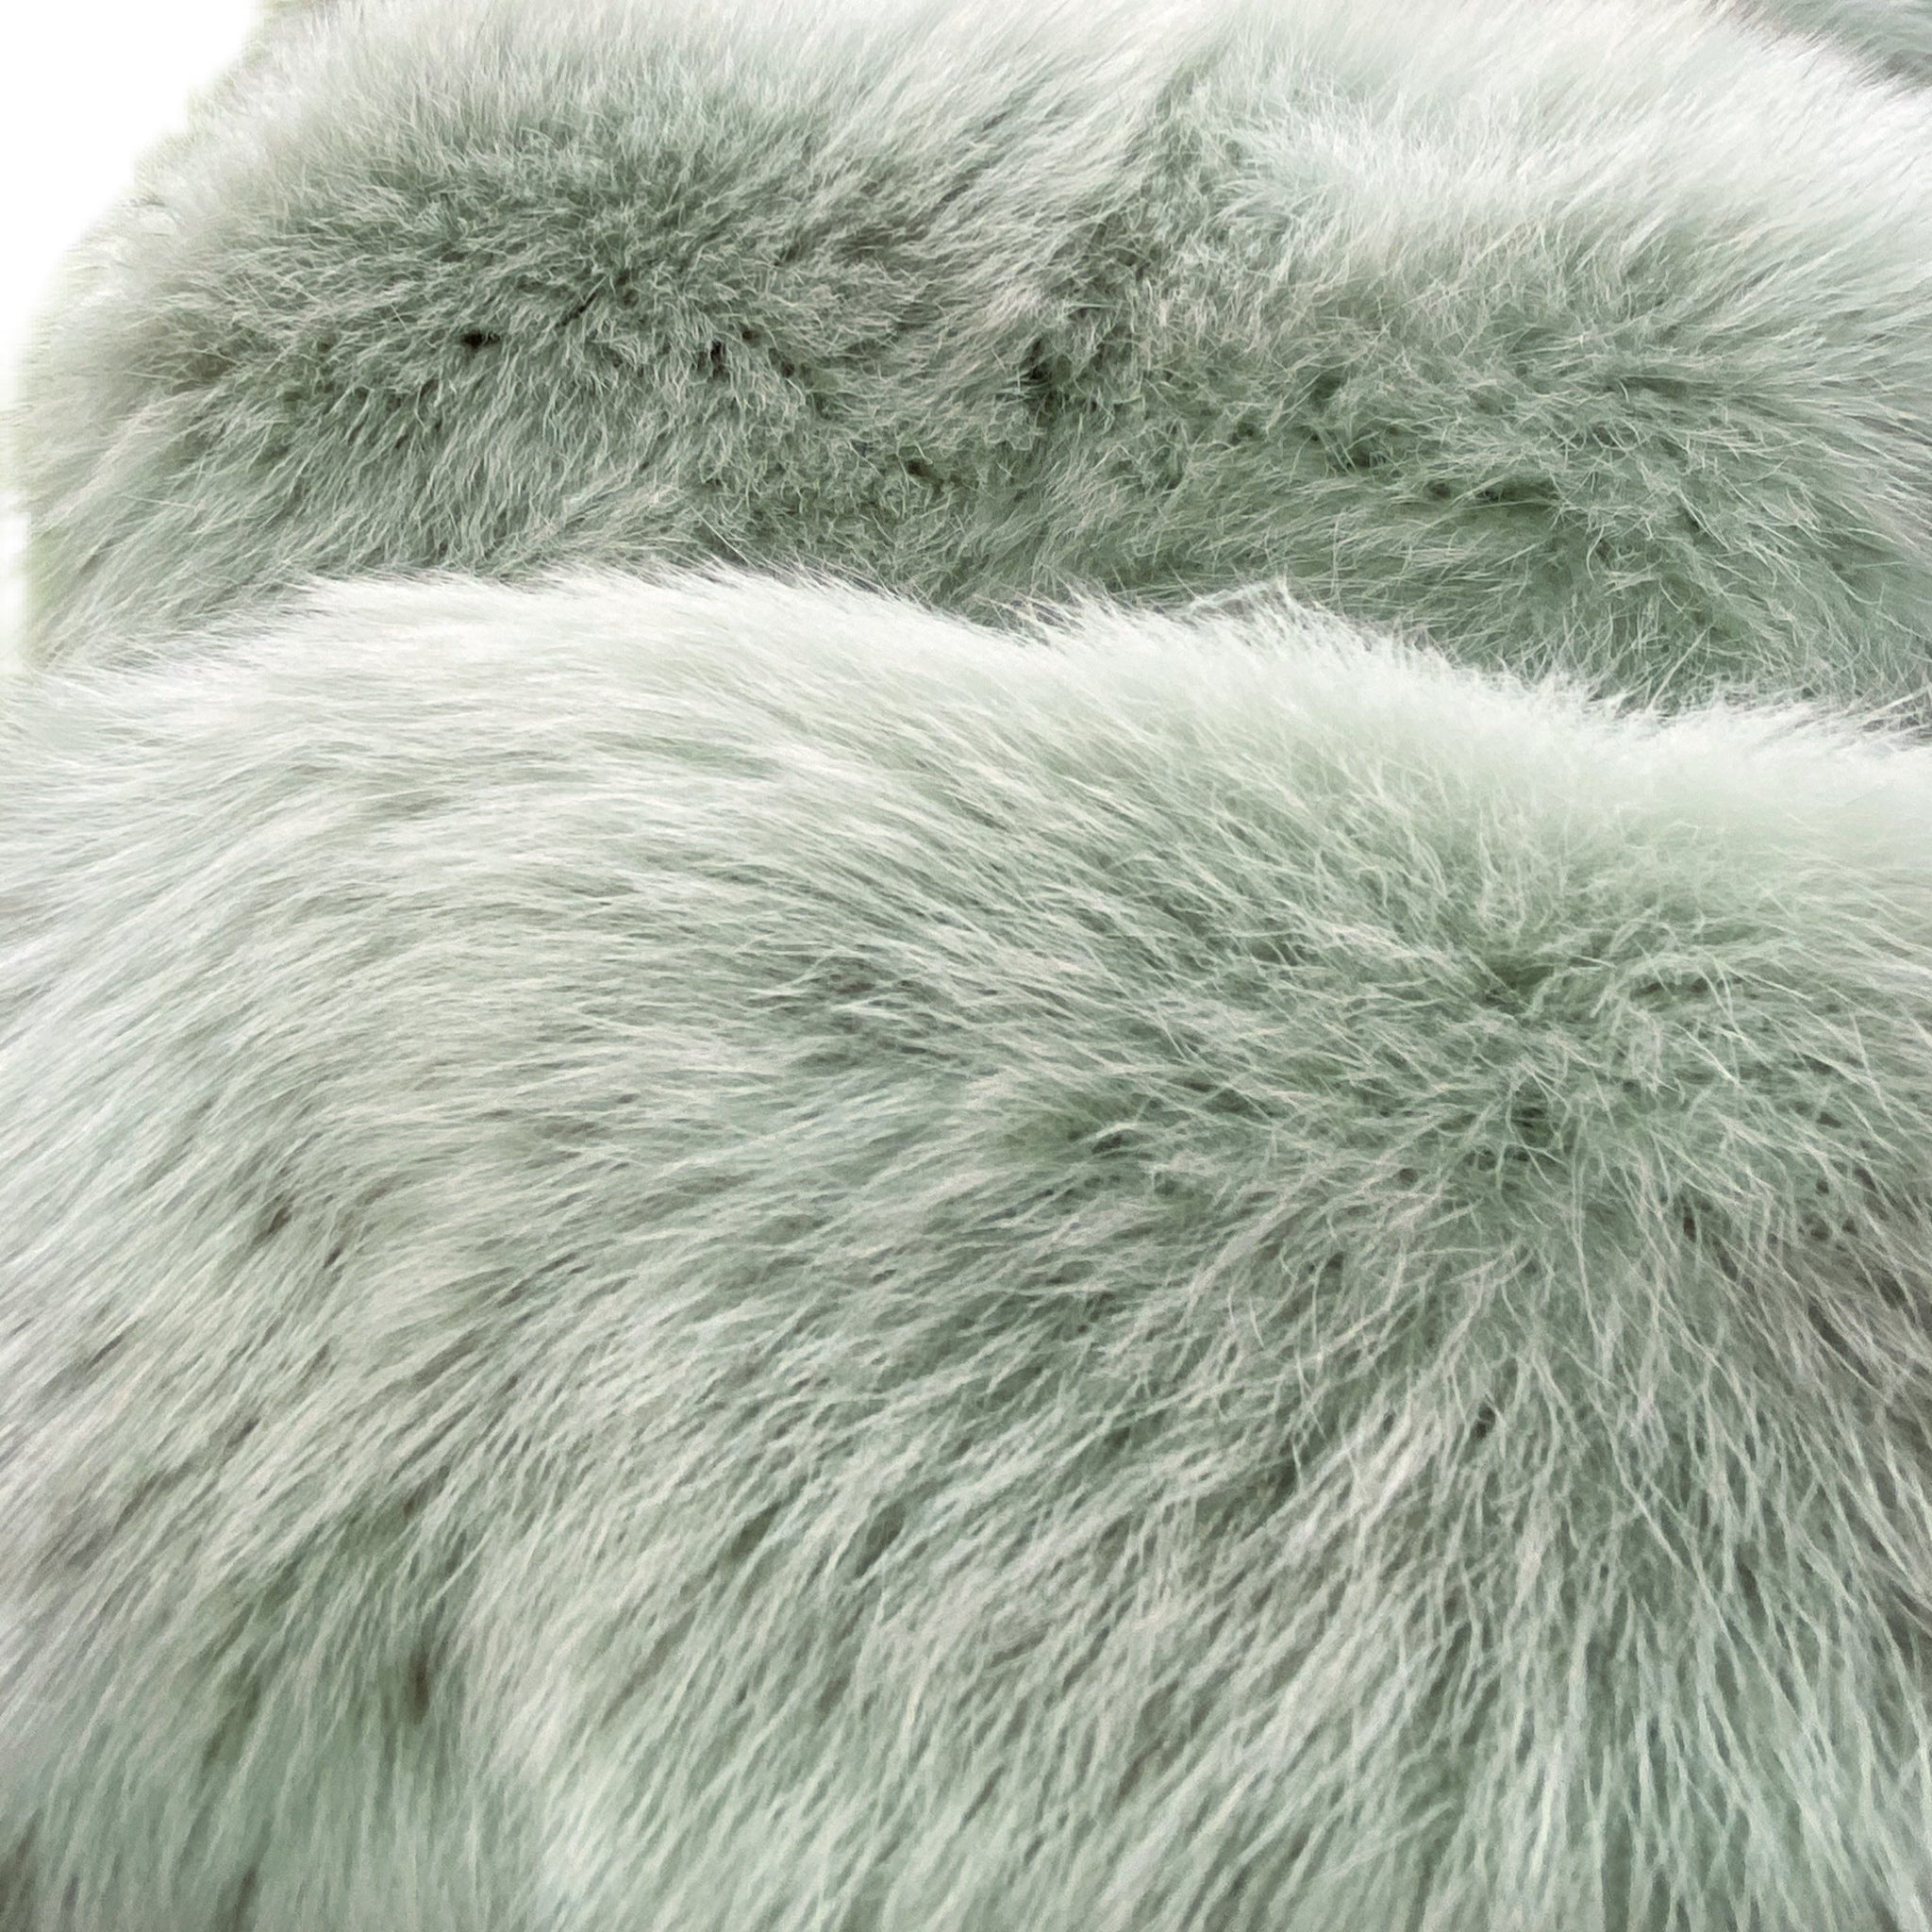 MINT CHIP luxe fur from Banana Lily